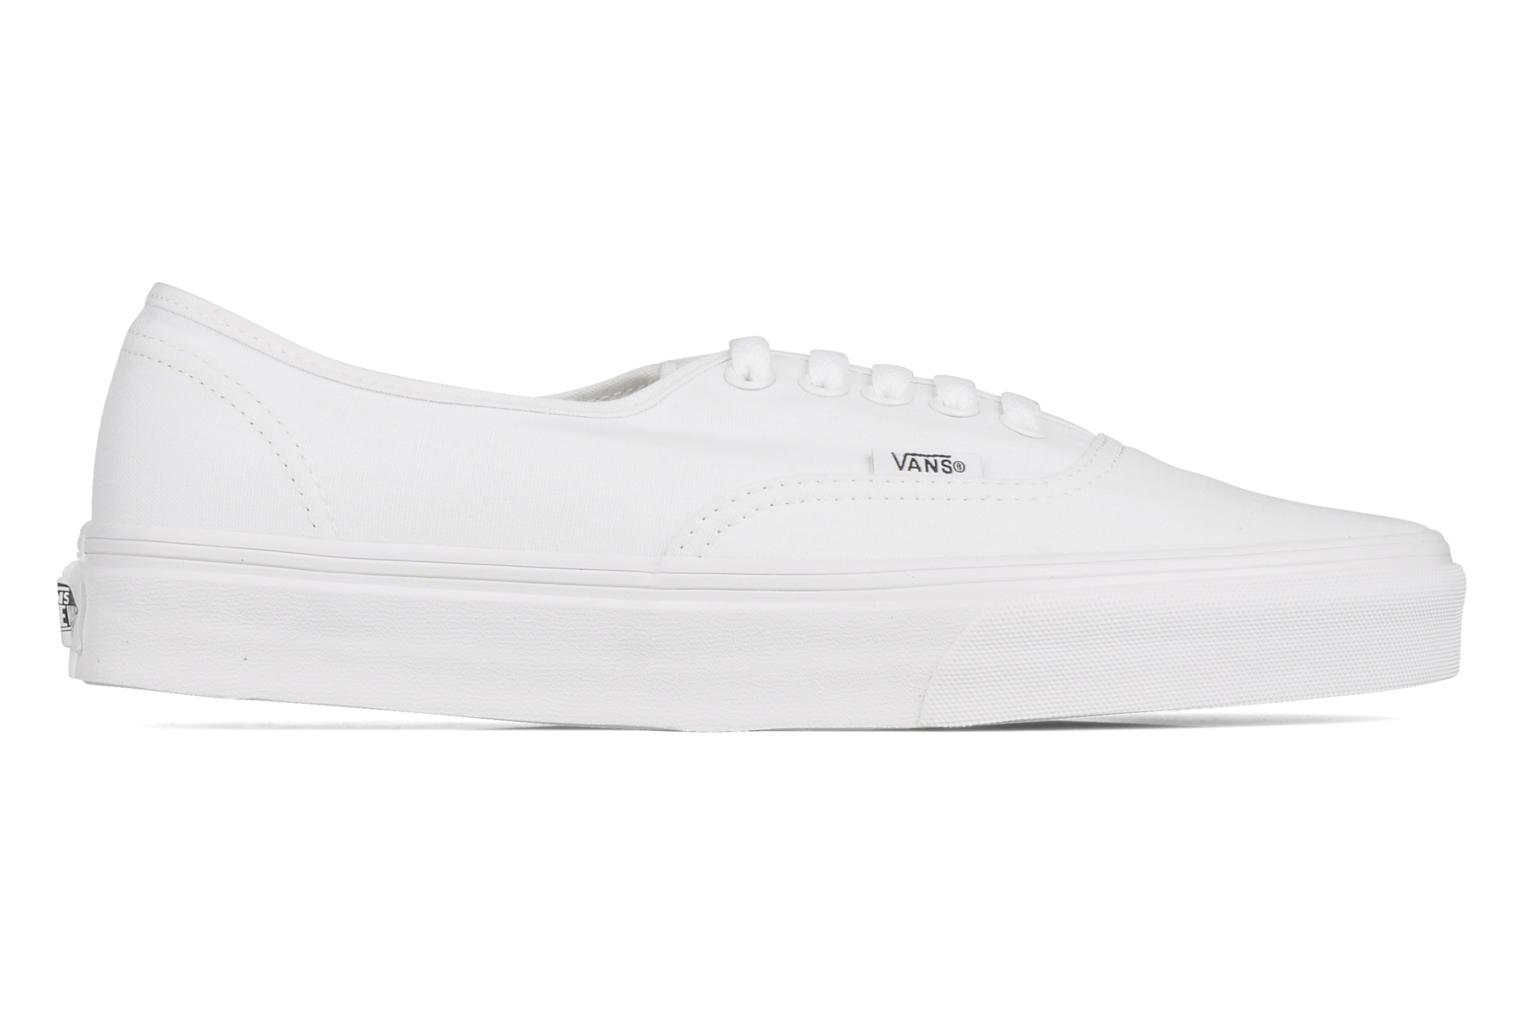 White White Vans Authentic True True True Authentic White Vans Vans Authentic Vans xrCoBde